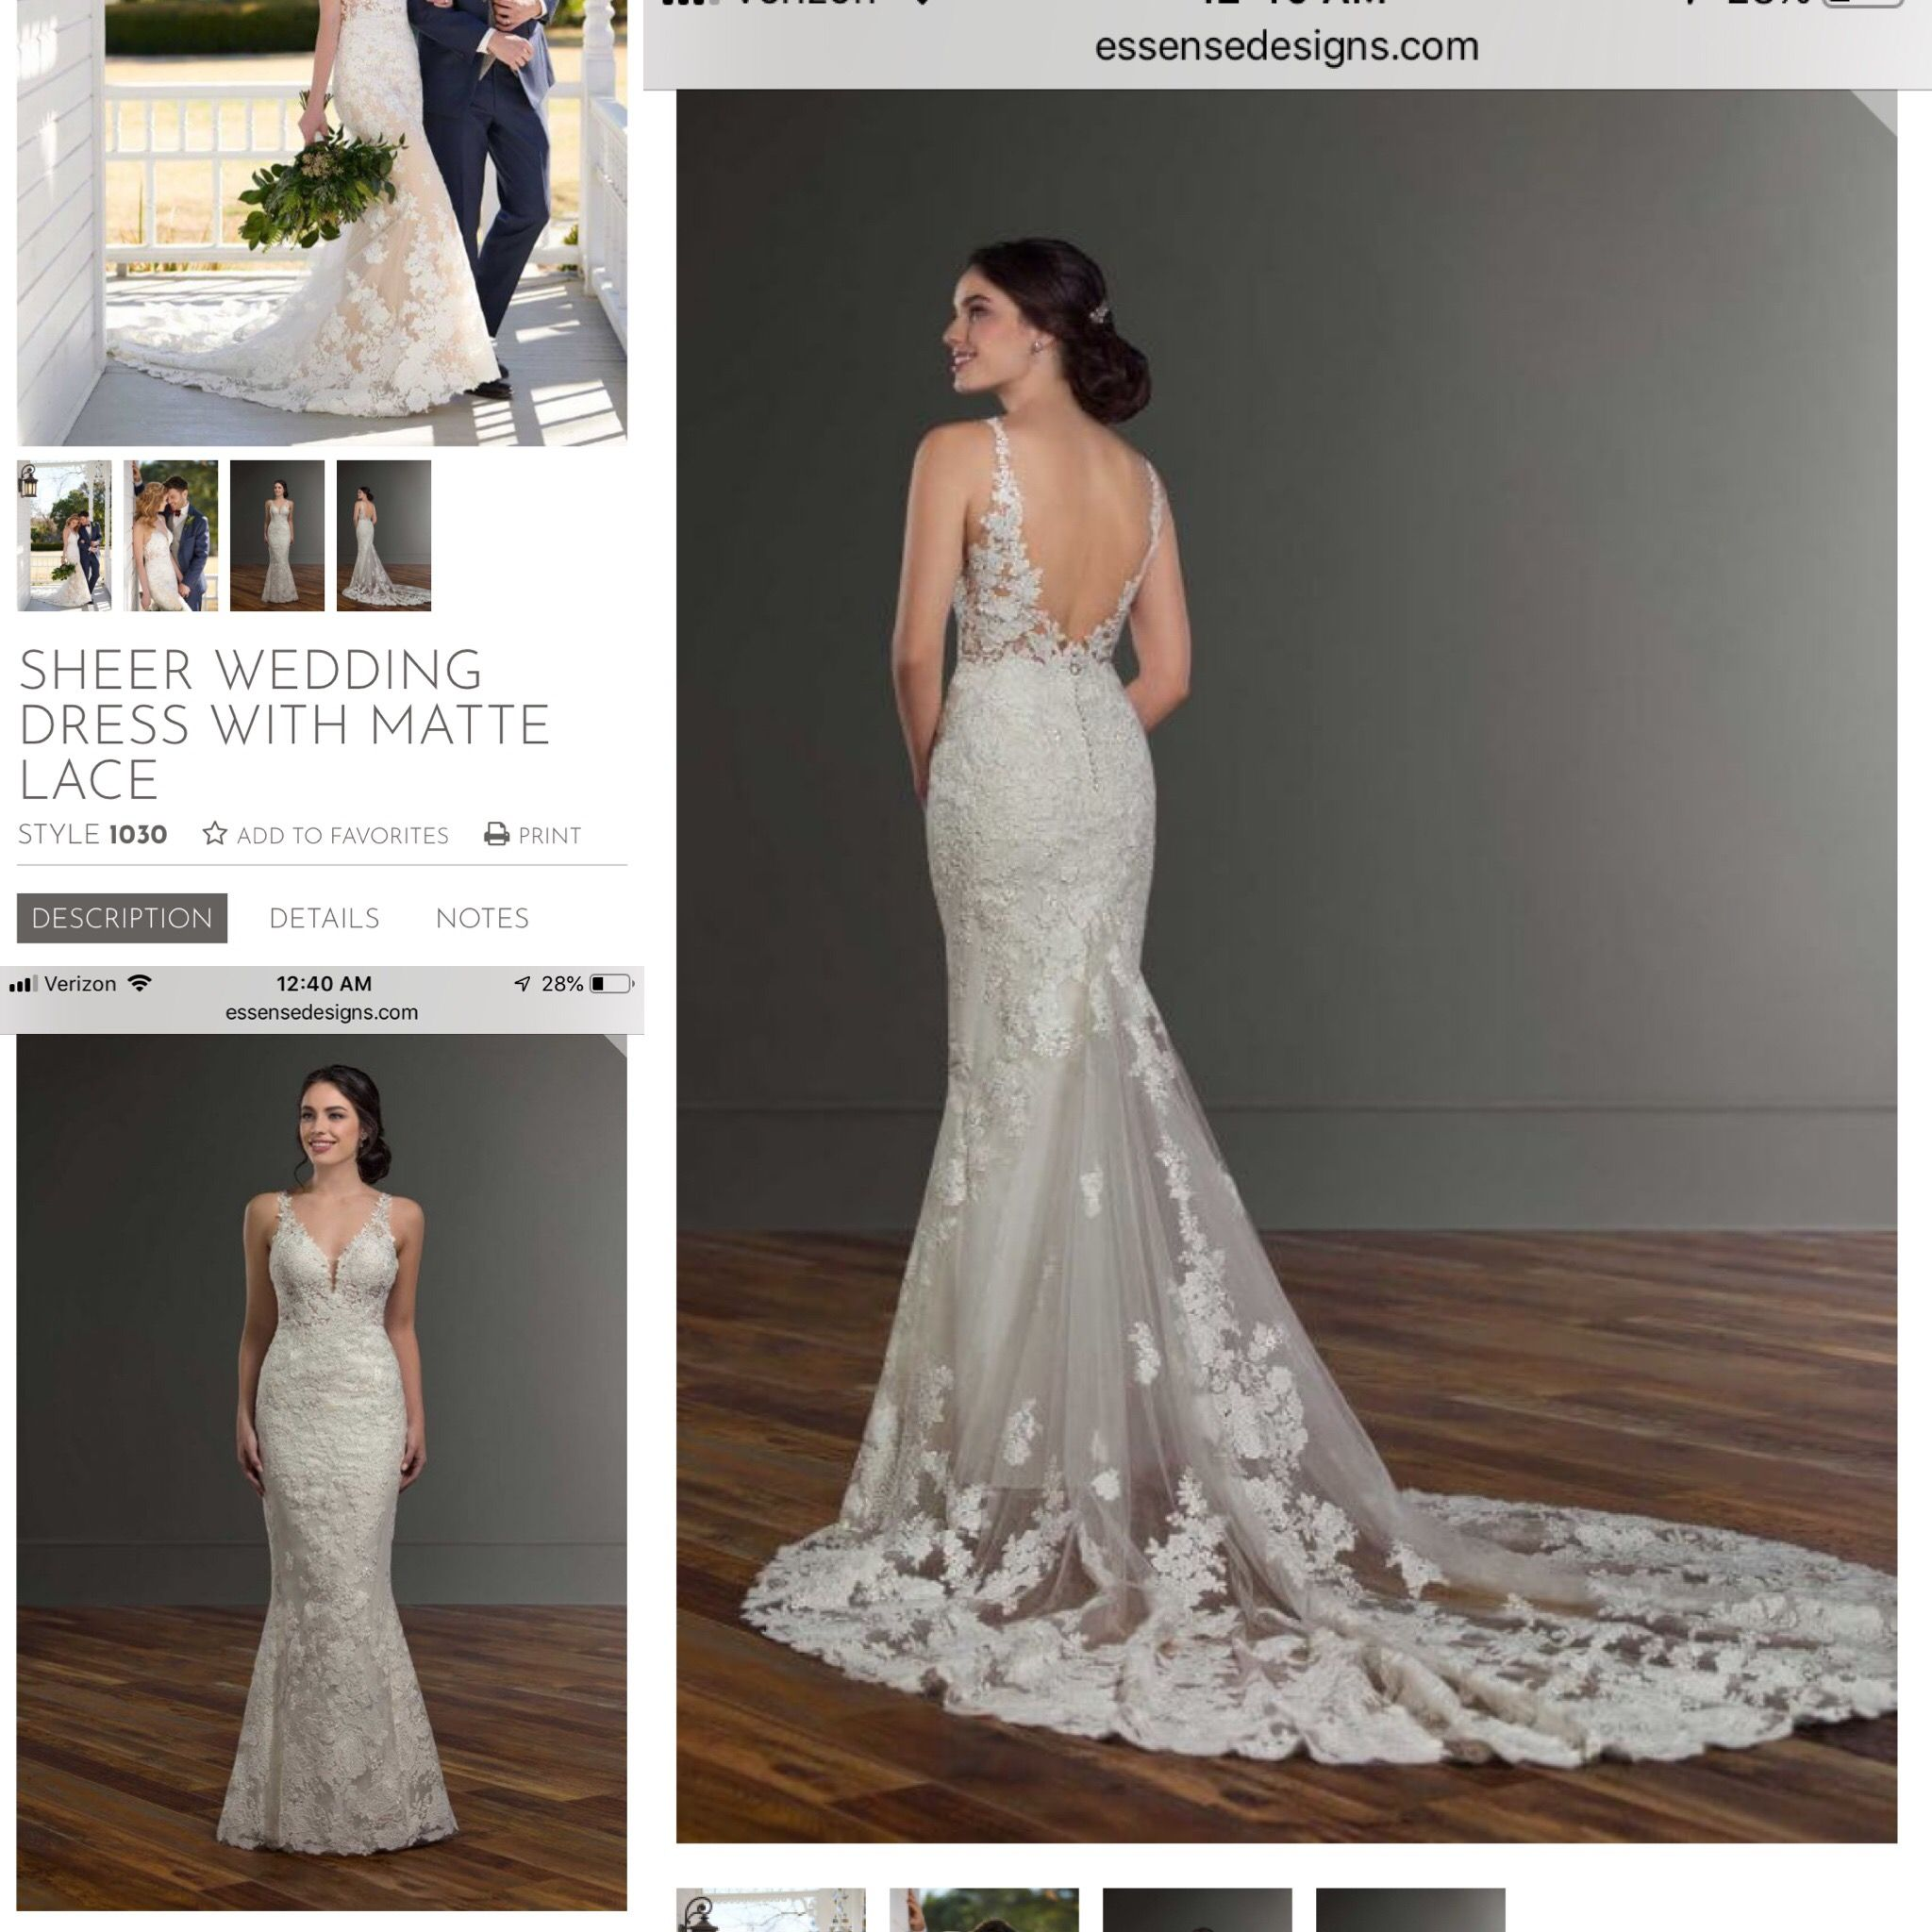 Chicago wedding dress shops  Pin by Danielle Cardarelli on Ium getting married  Pinterest